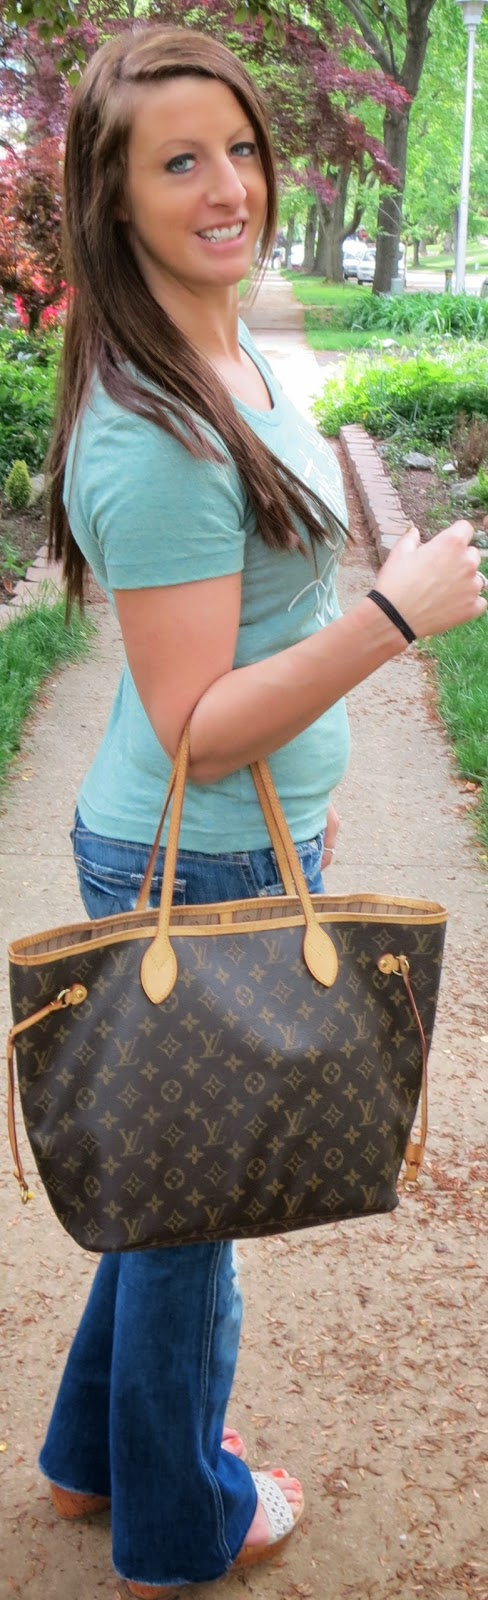 louis vuitton neverfull, tee shirt, casual, fashion, outfit